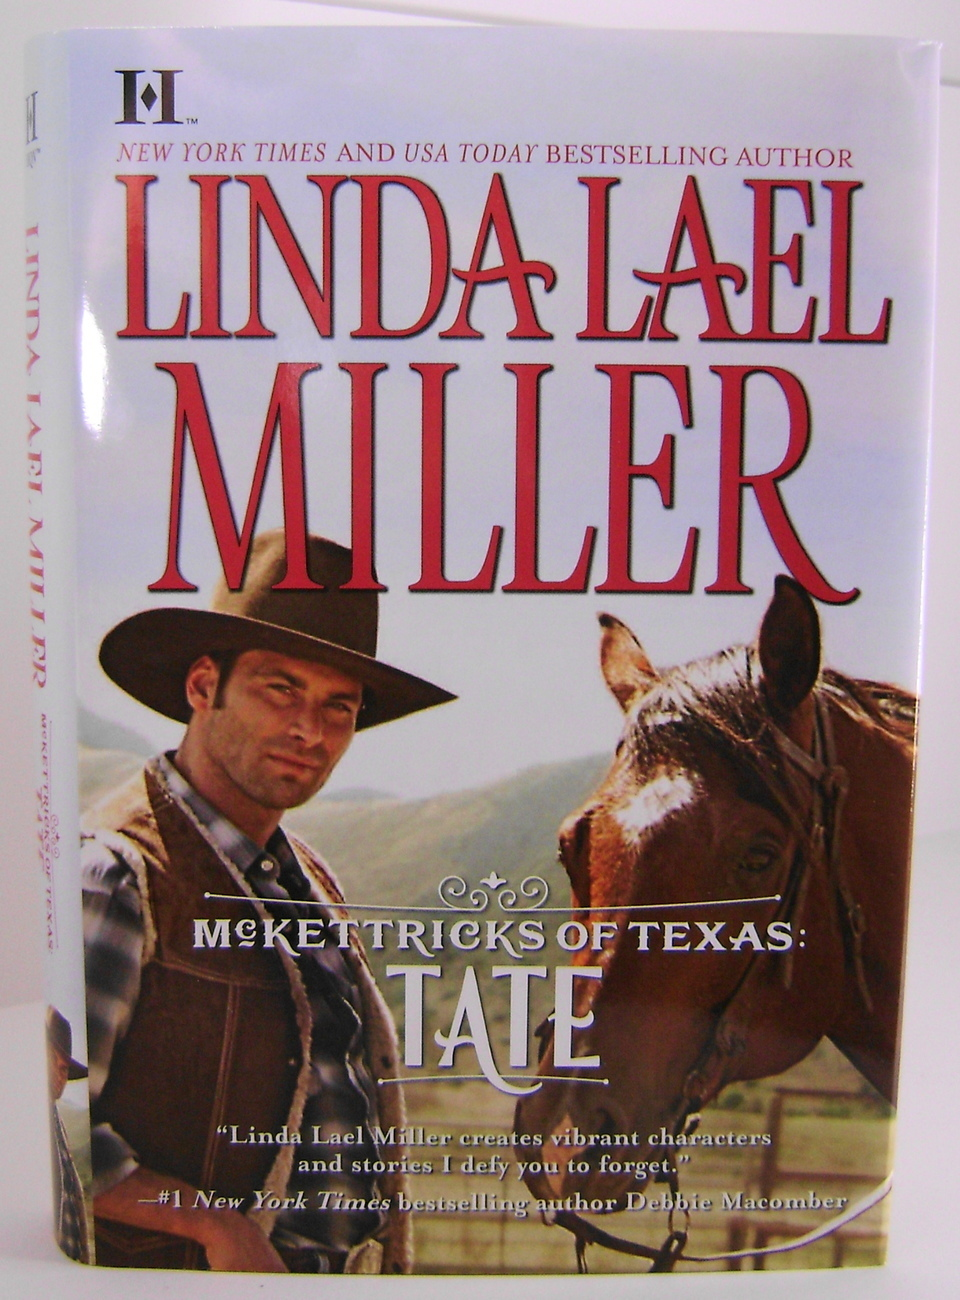 McKettricks Of Texas Tate By Linda Lael Miller BCE HC